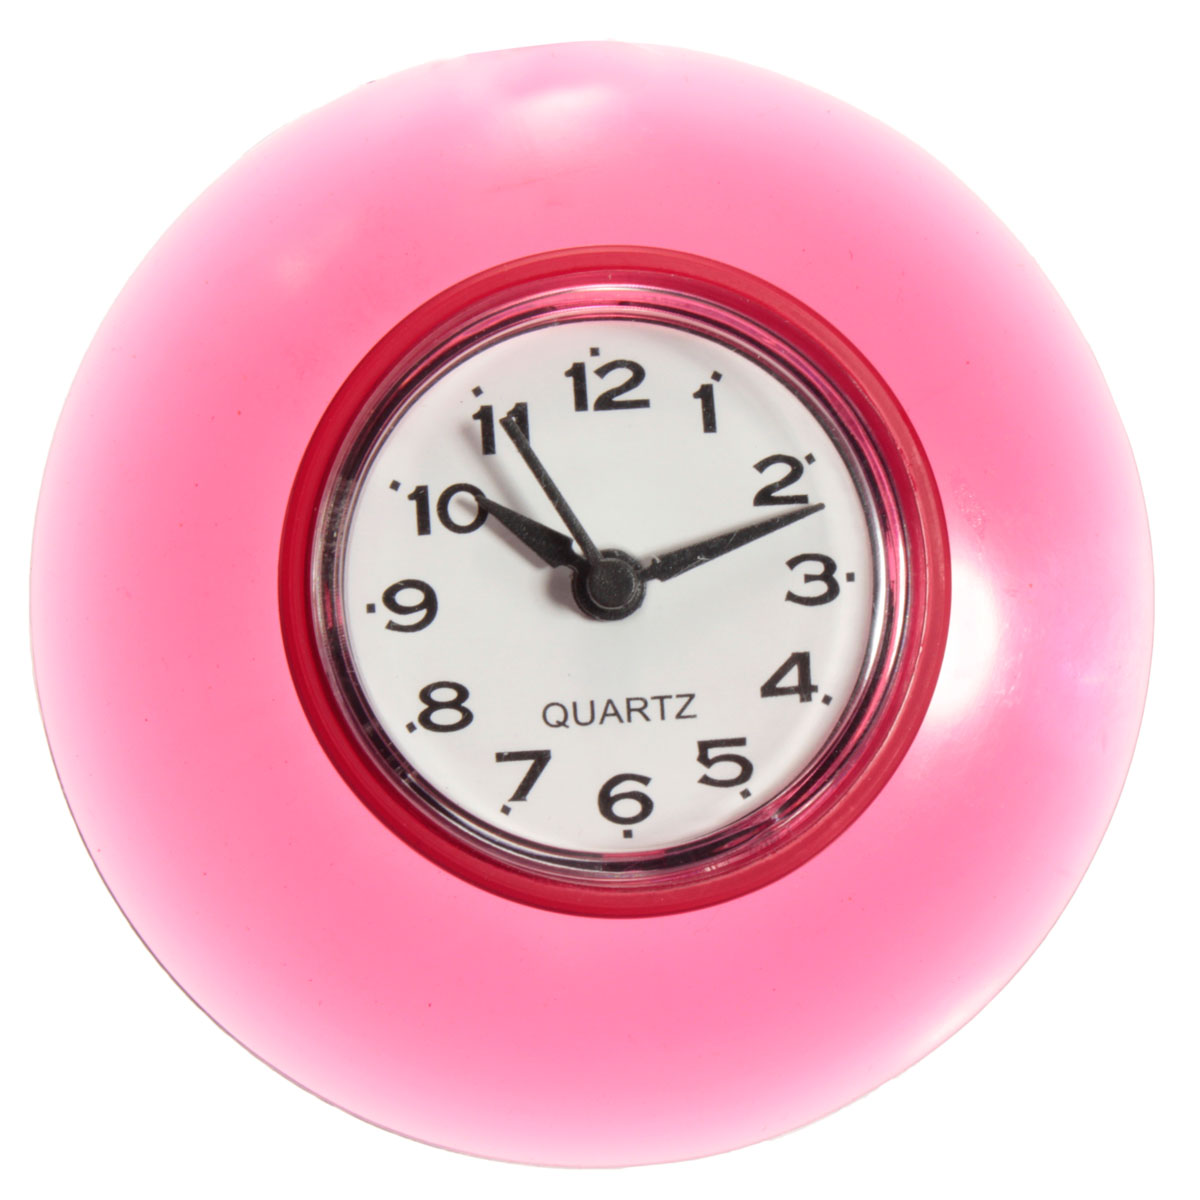 Bathroom Kitchen Waterproof Wall Clock Resistant Timer Suction Cup